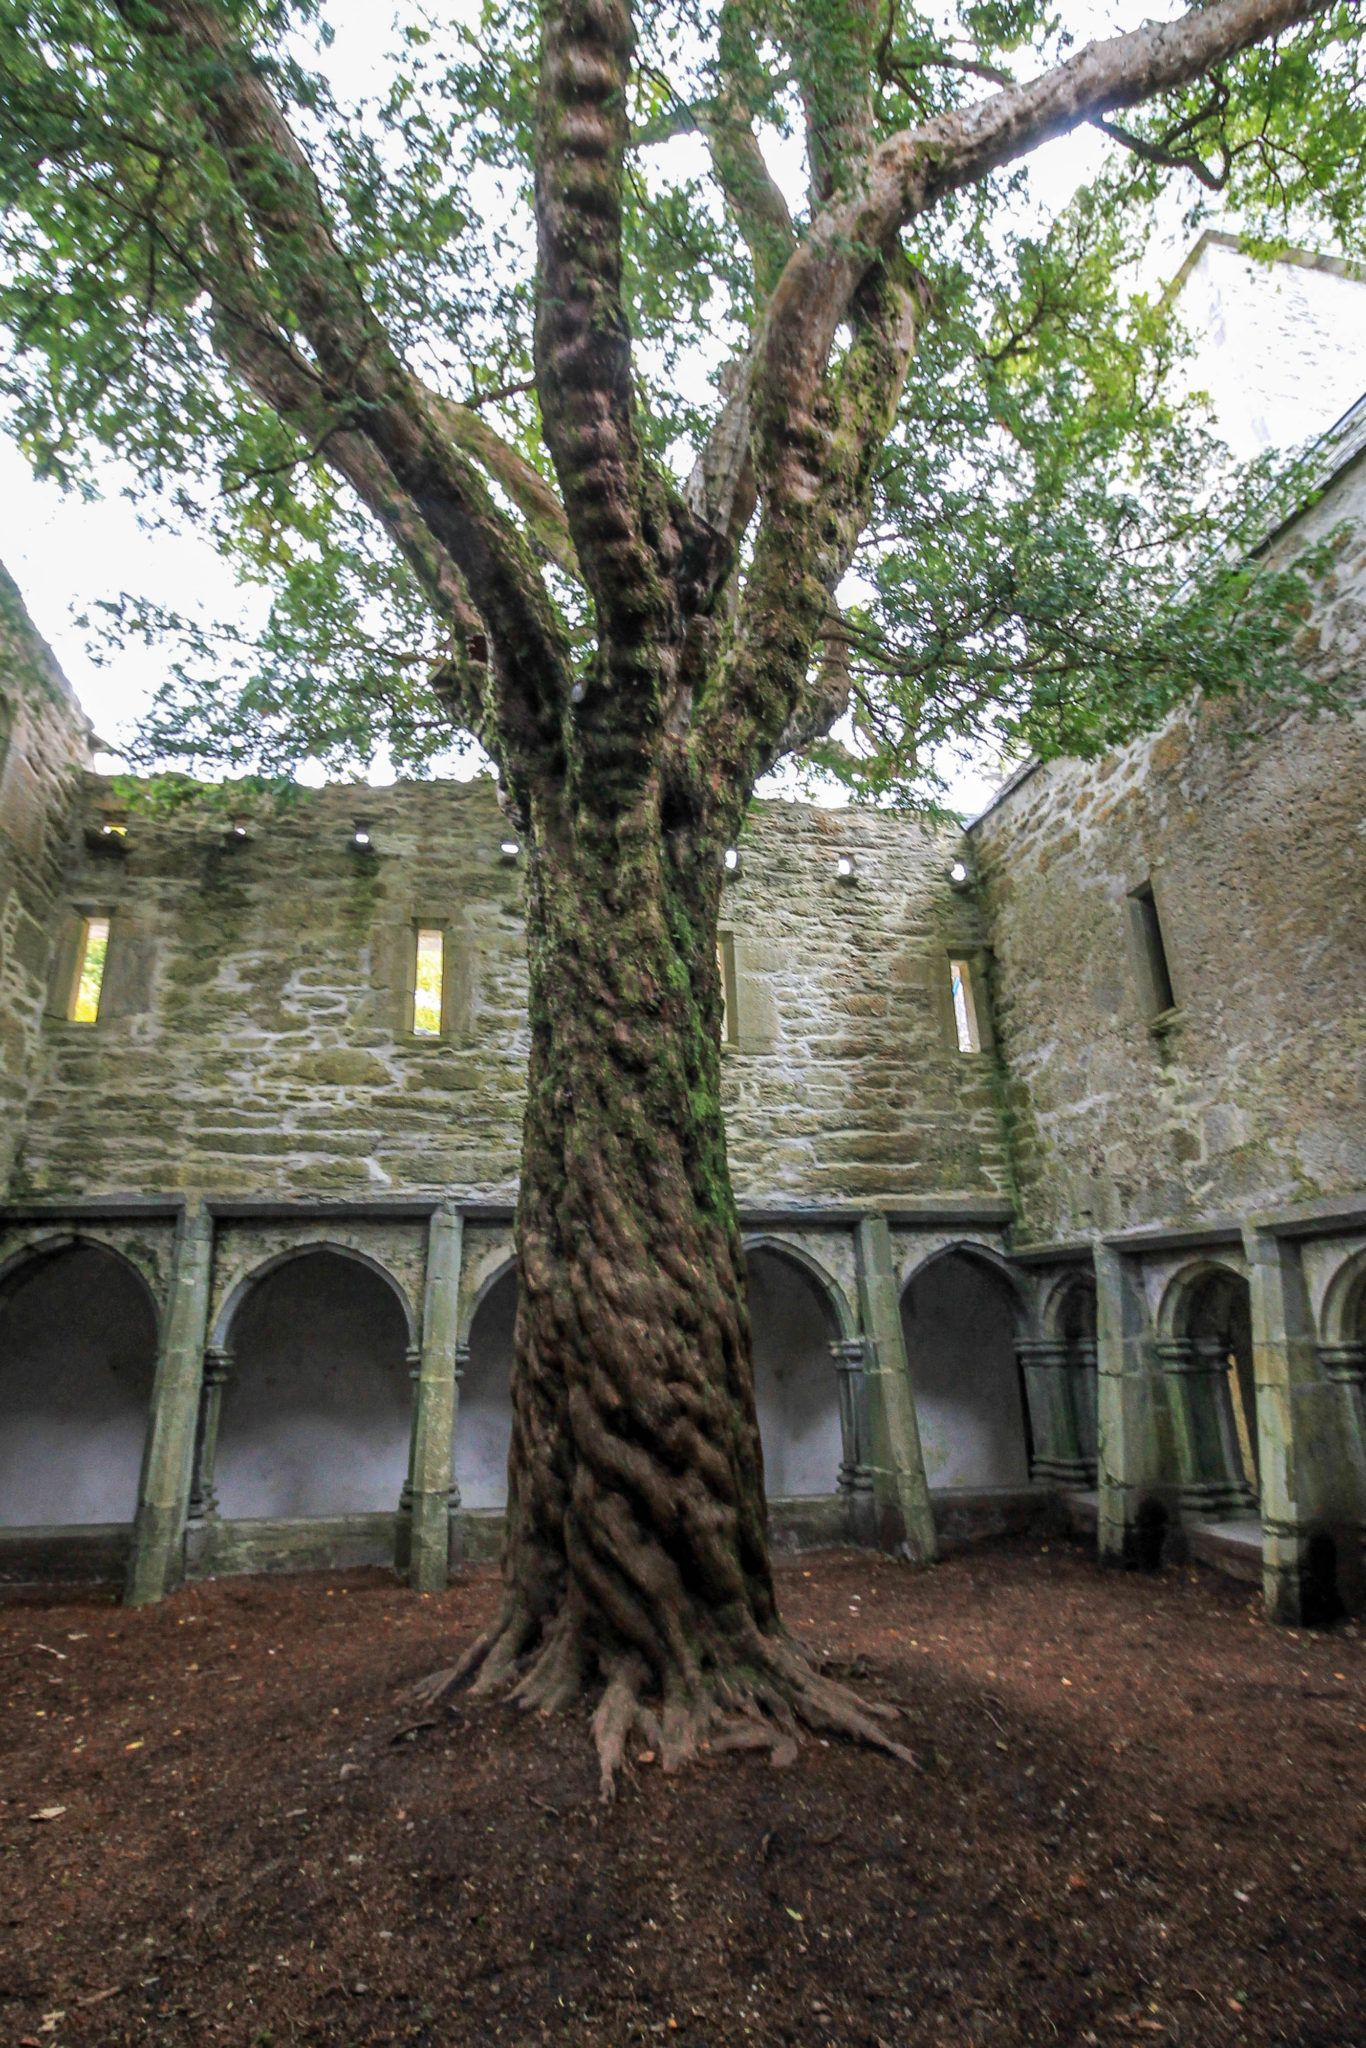 Planning an Itinerary to Ireland Without a Rental Car - Curious Travel Bug